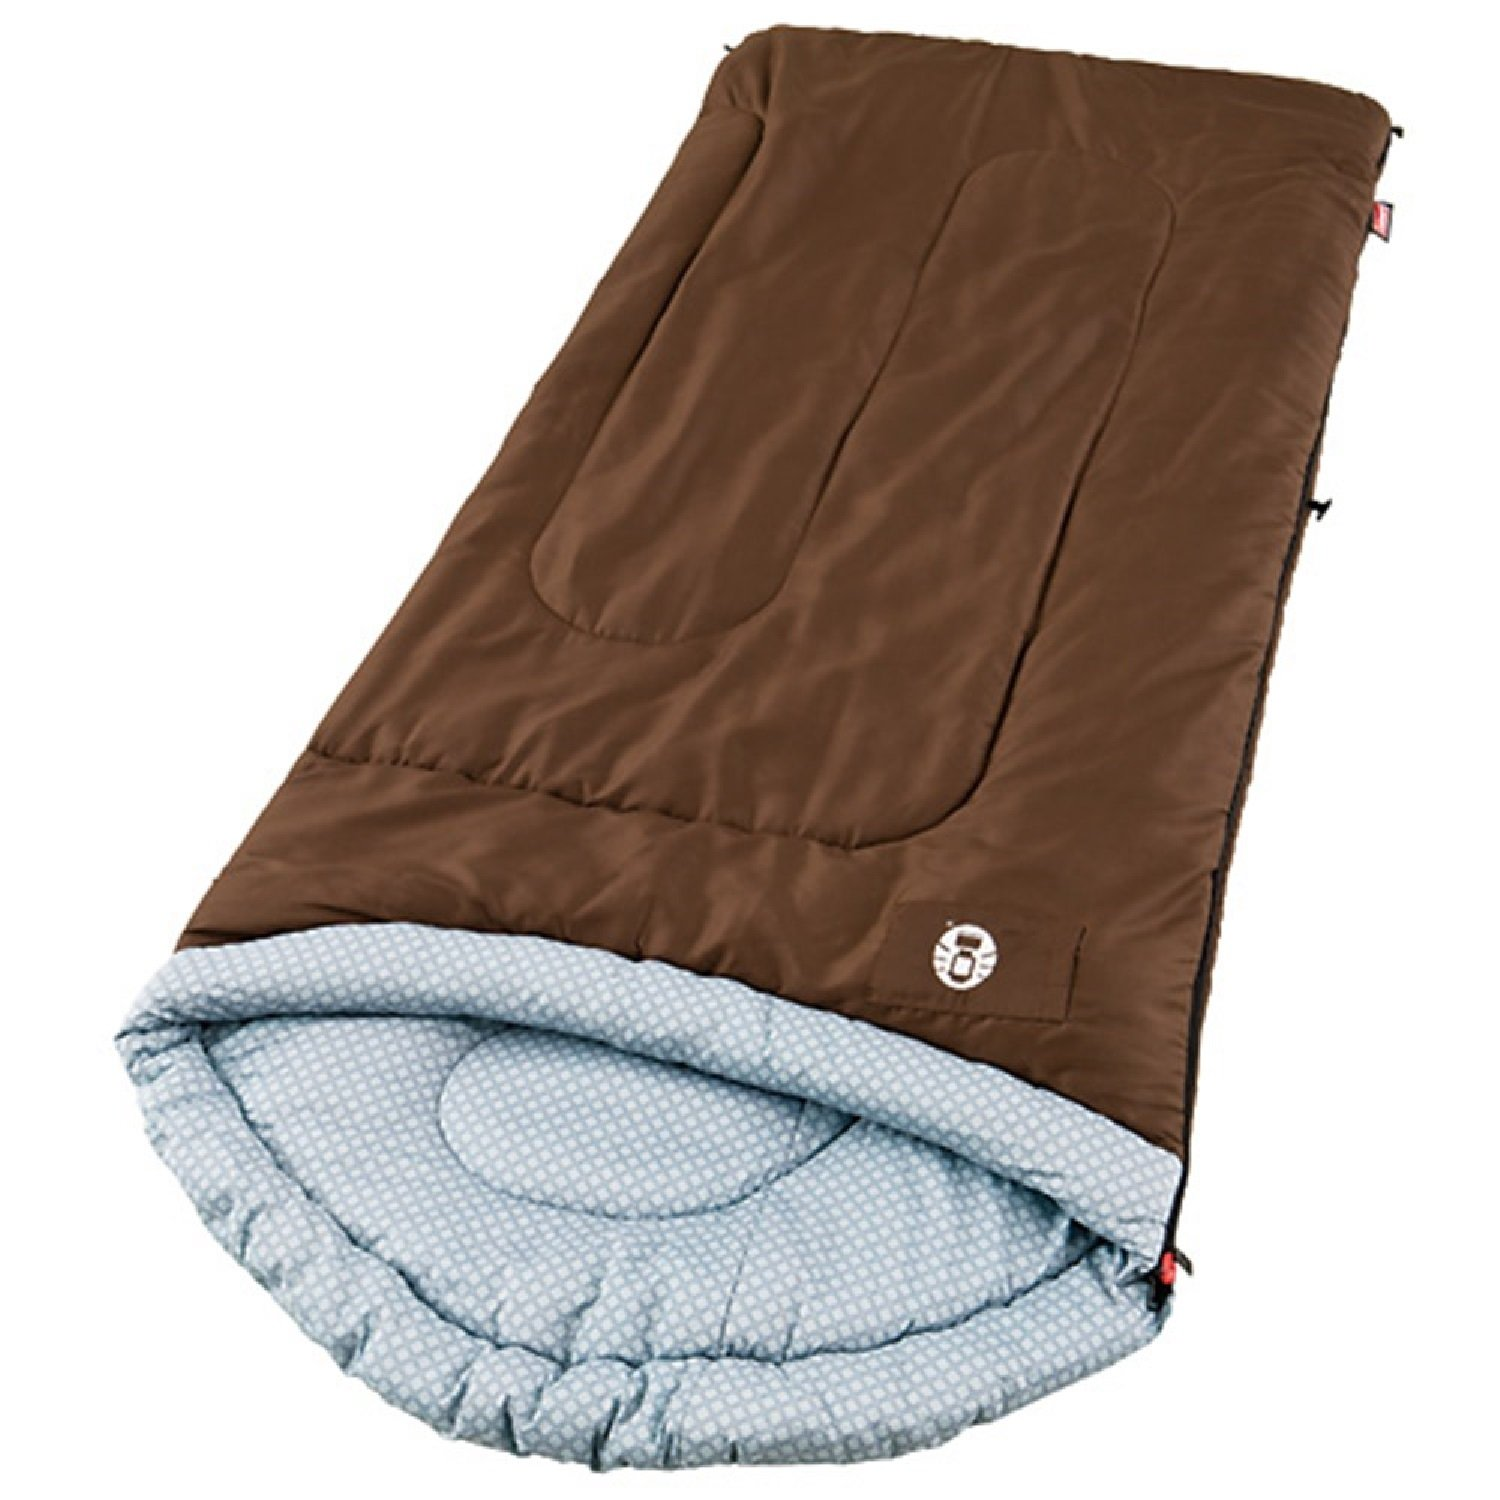 An image of Coleman Willow Creek 2000004446 40 Degree Polyester Sleeping Bag | Expert Camper